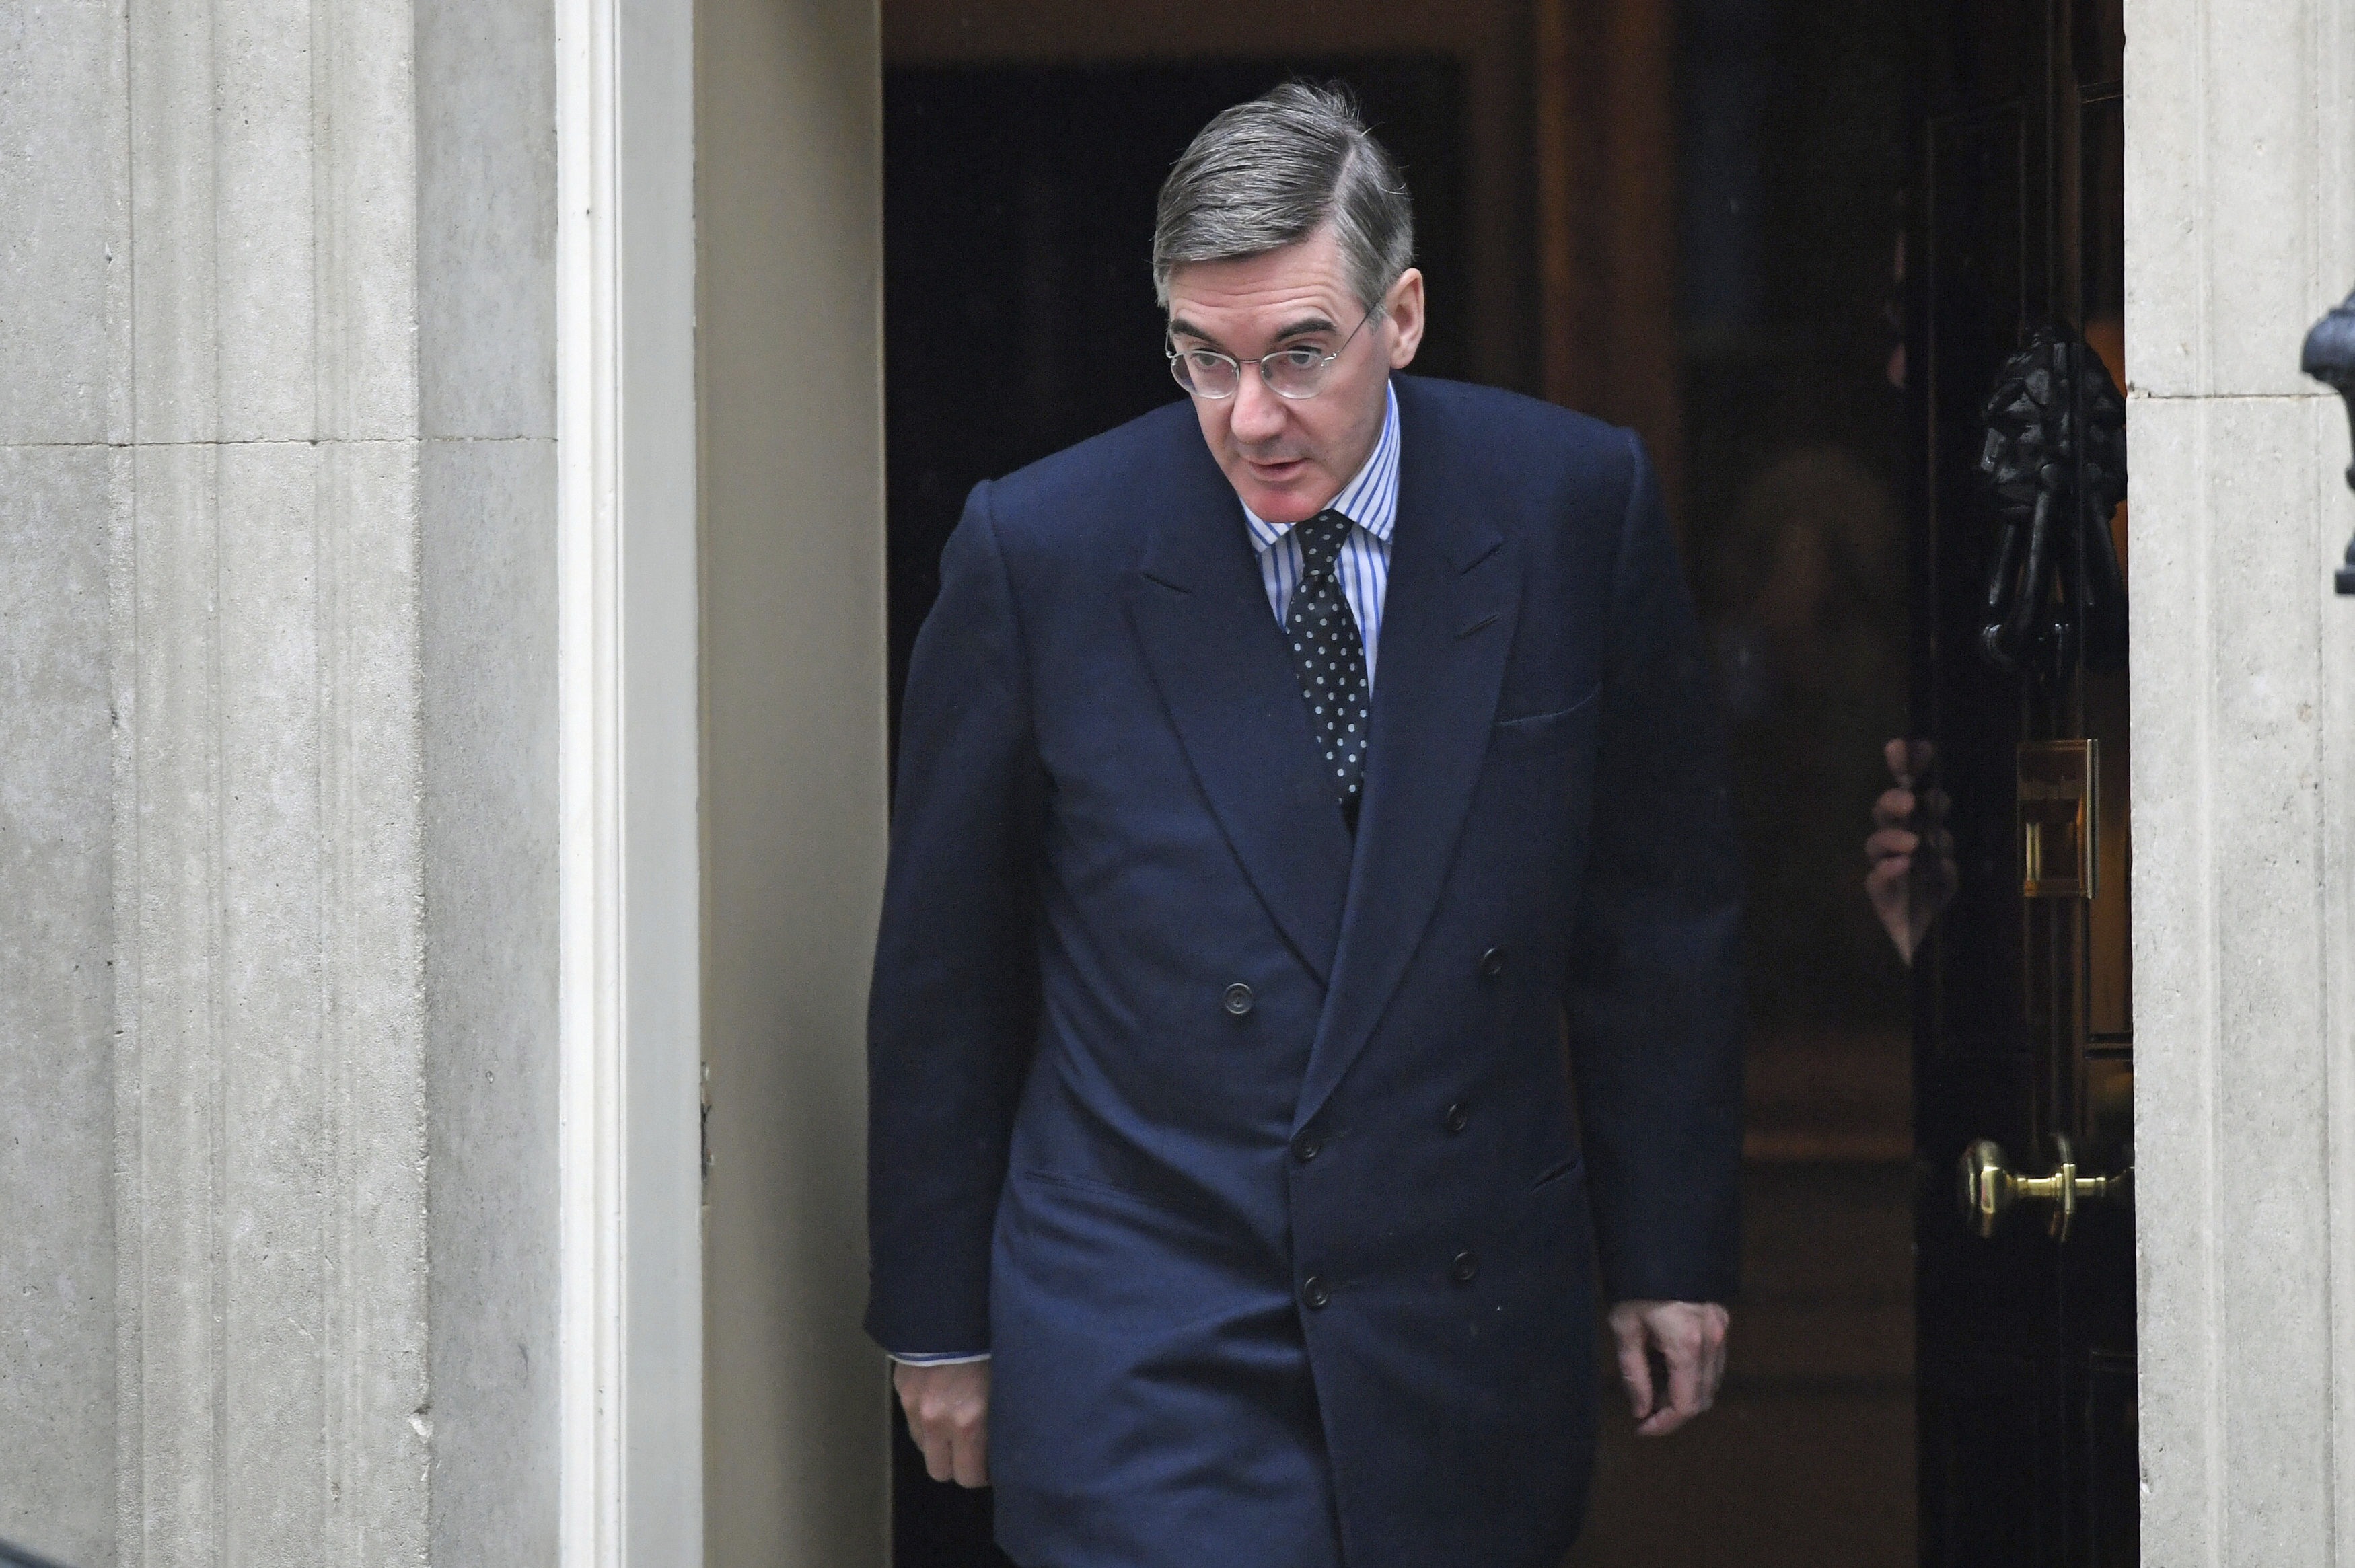 Leader of the House of Commons Jacob Rees-Mogg leaves 10 Downing Street, London, Monday Oct. 21, 2019. British Prime Minister Boris Johnson is expected to push for a vote on his European Union divorce deal as Parliament prepares for a week of guerrilla warfare over Brexit. (Stefan Rousseau/PA via AP)